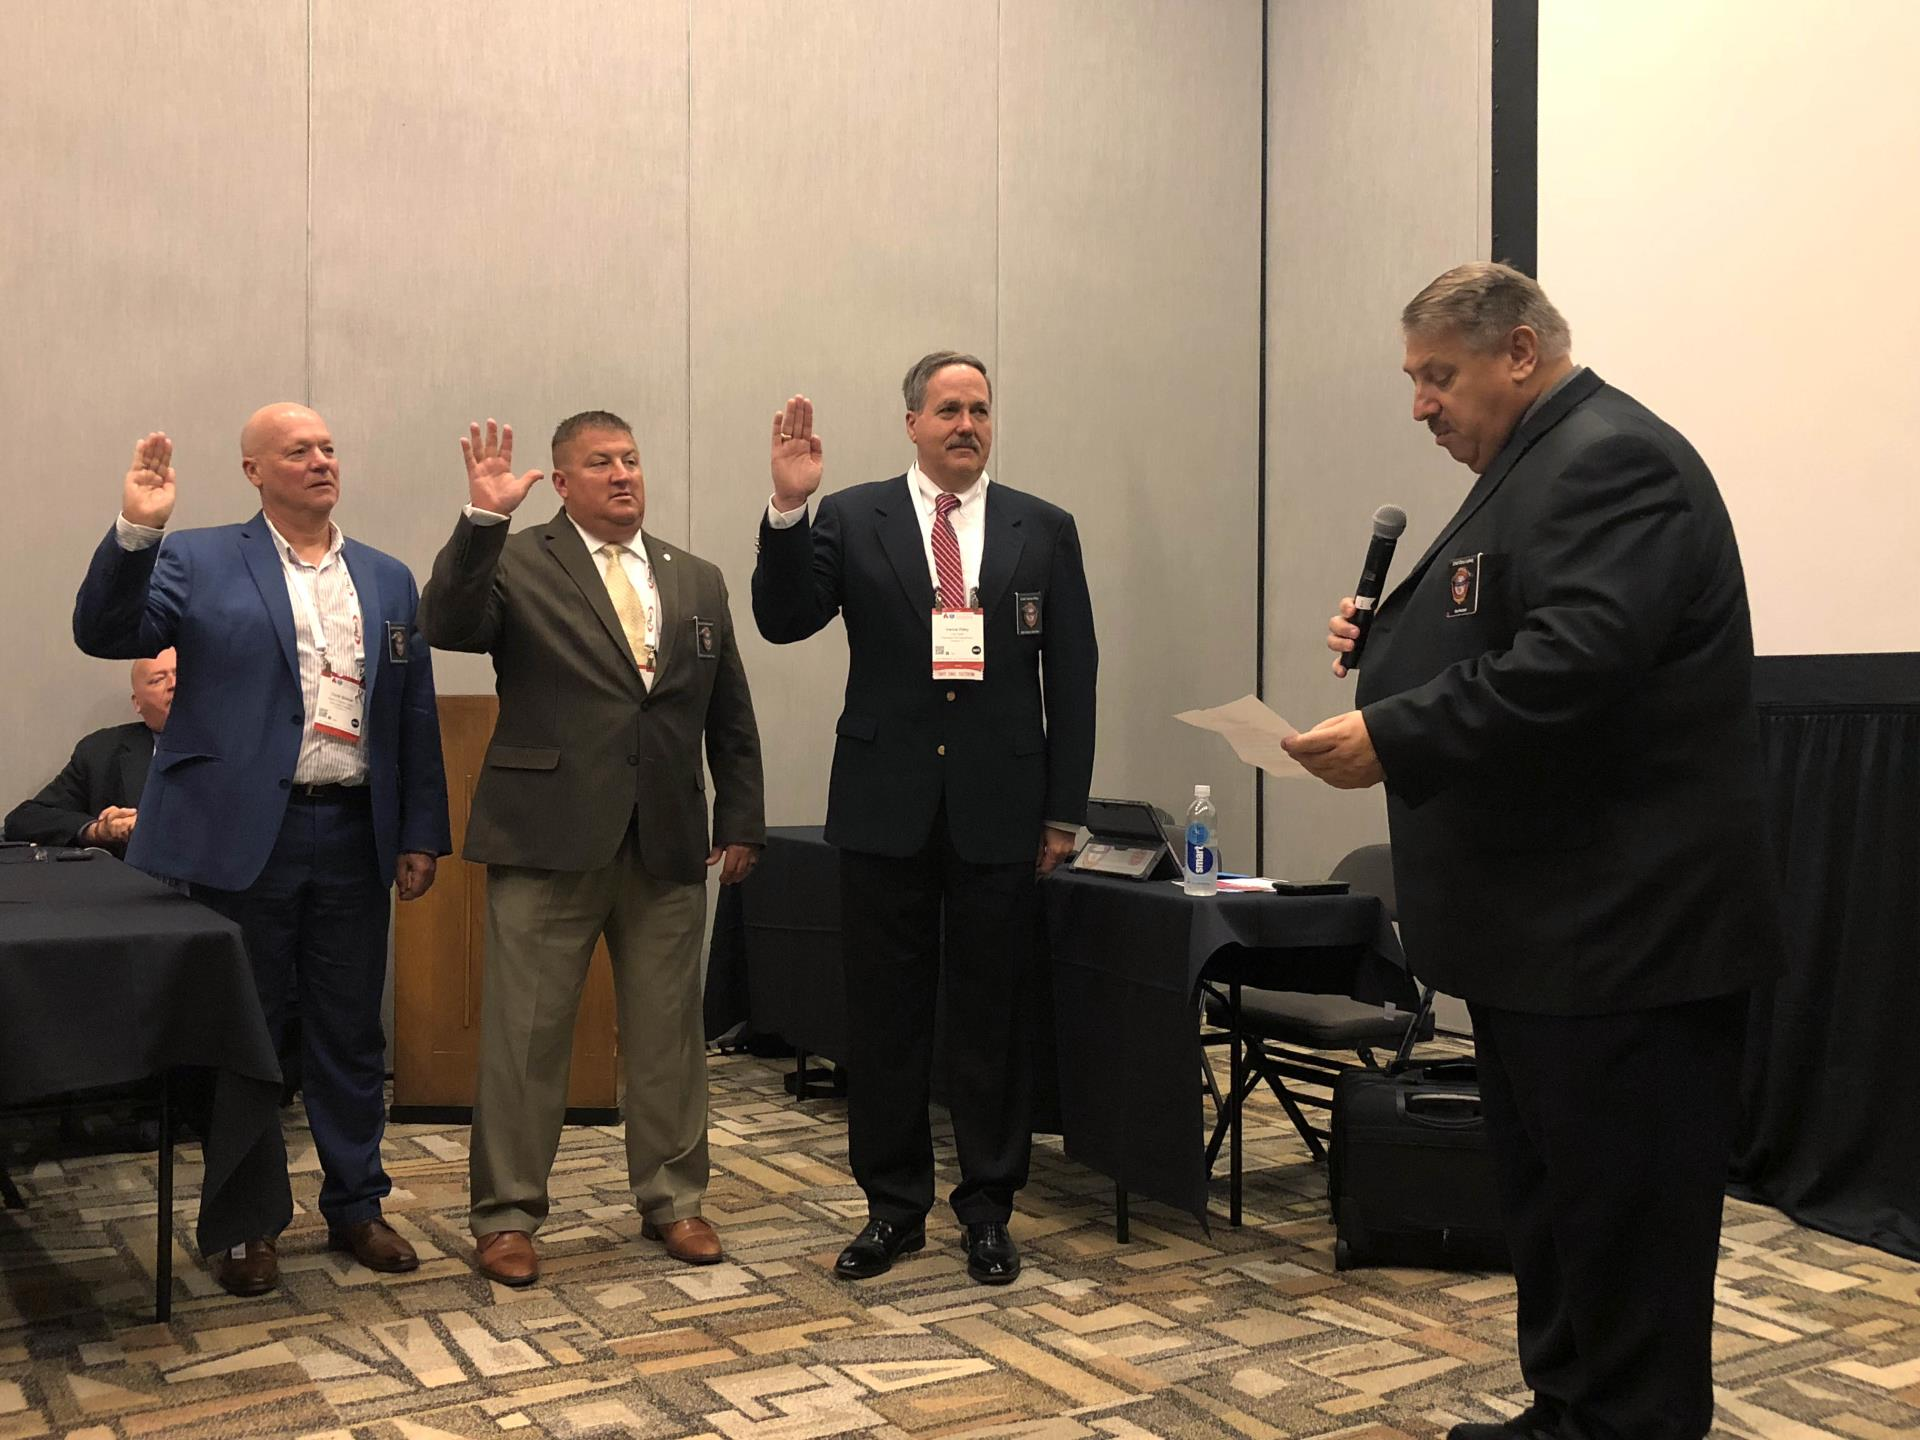 Fire Chief Vance Riley was sworn in as Vice Chairman in the EMS Section of IAFC